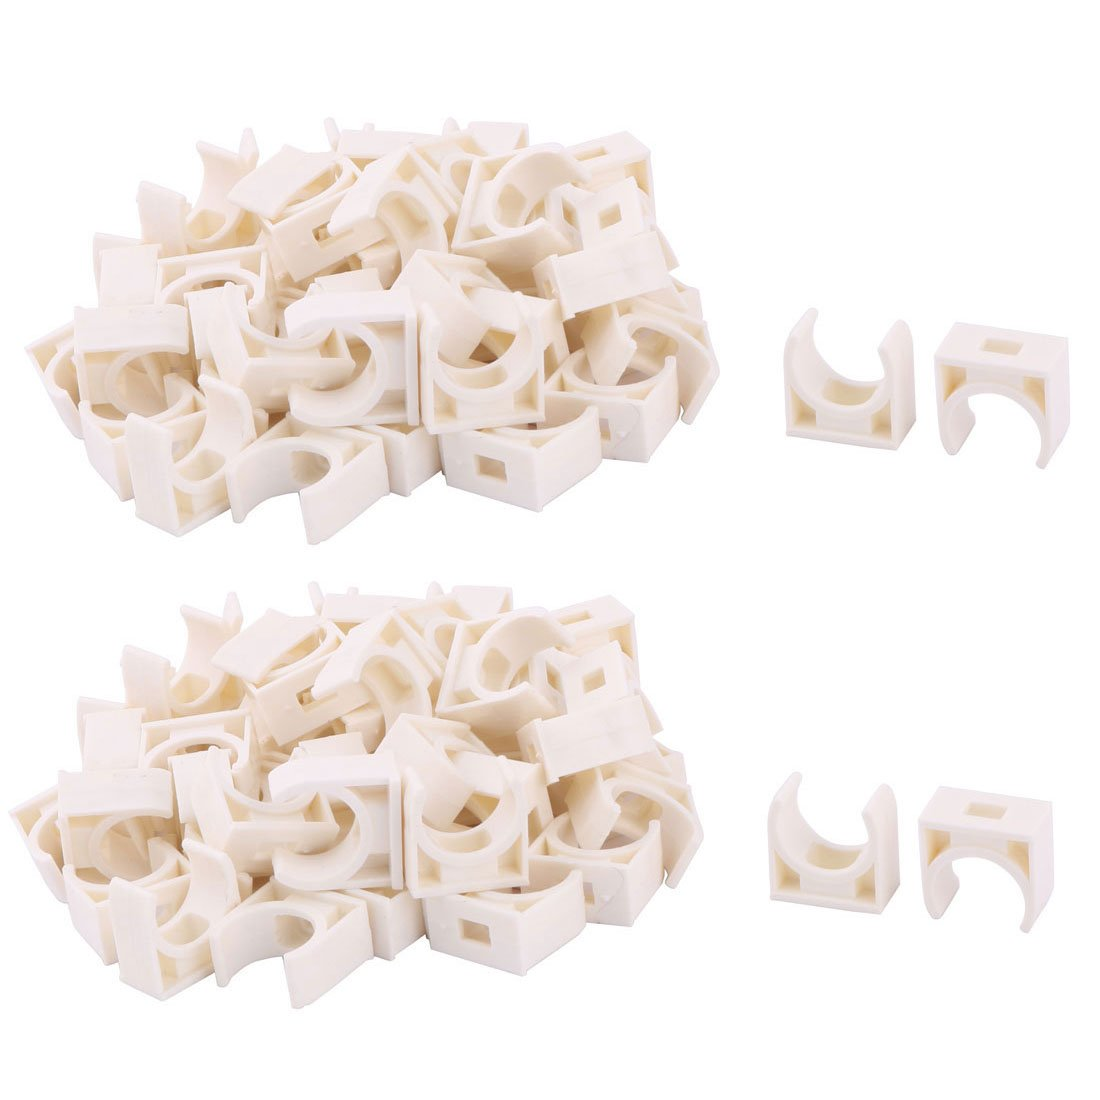 uxcell PVC Home U Shaped Water Supply Tube Hose Pipe Holder Clamp Clip 16mm Dia 100 Pcs